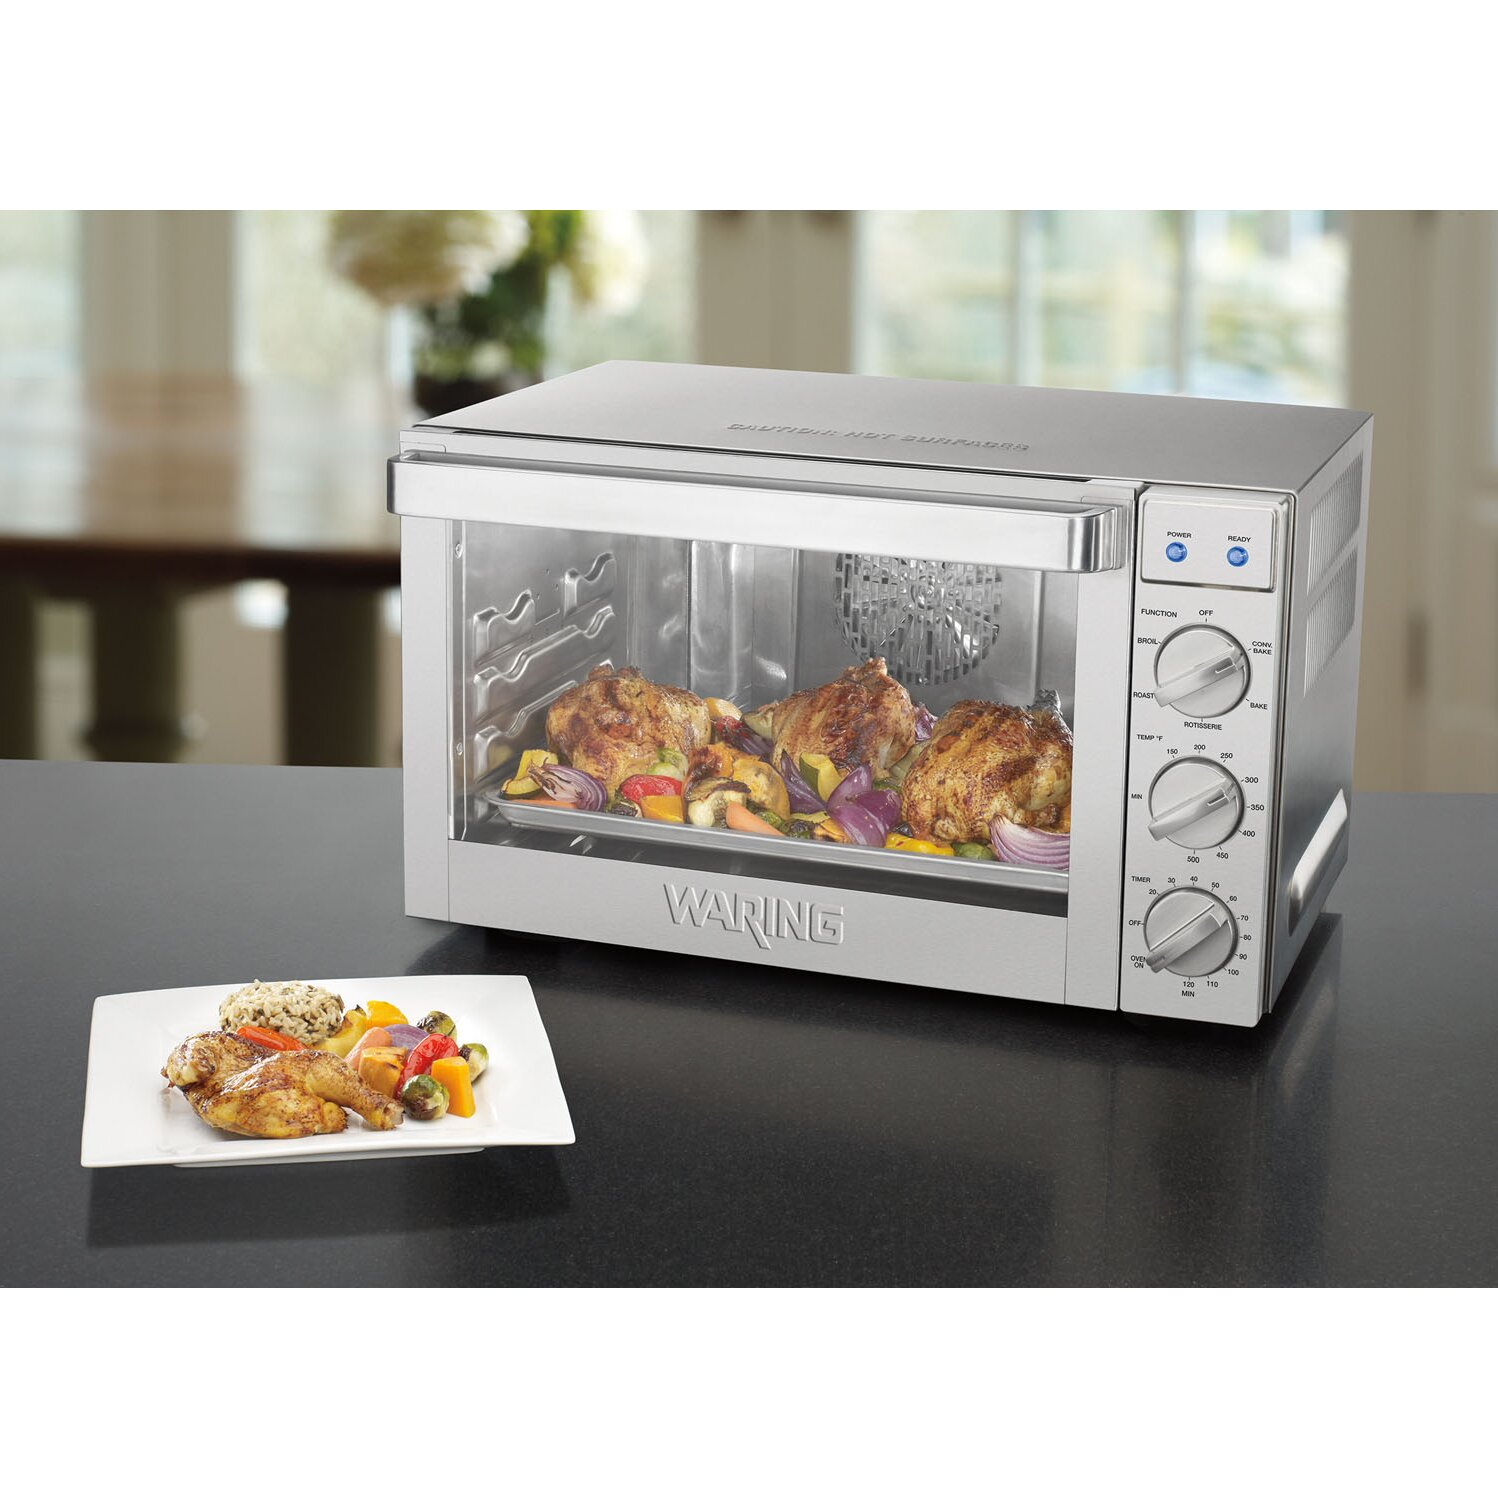 Commercial Countertop Convection Oven Reviews : ... Cubic Foot Commercial Countertop Convection Oven & Reviews Wayfair